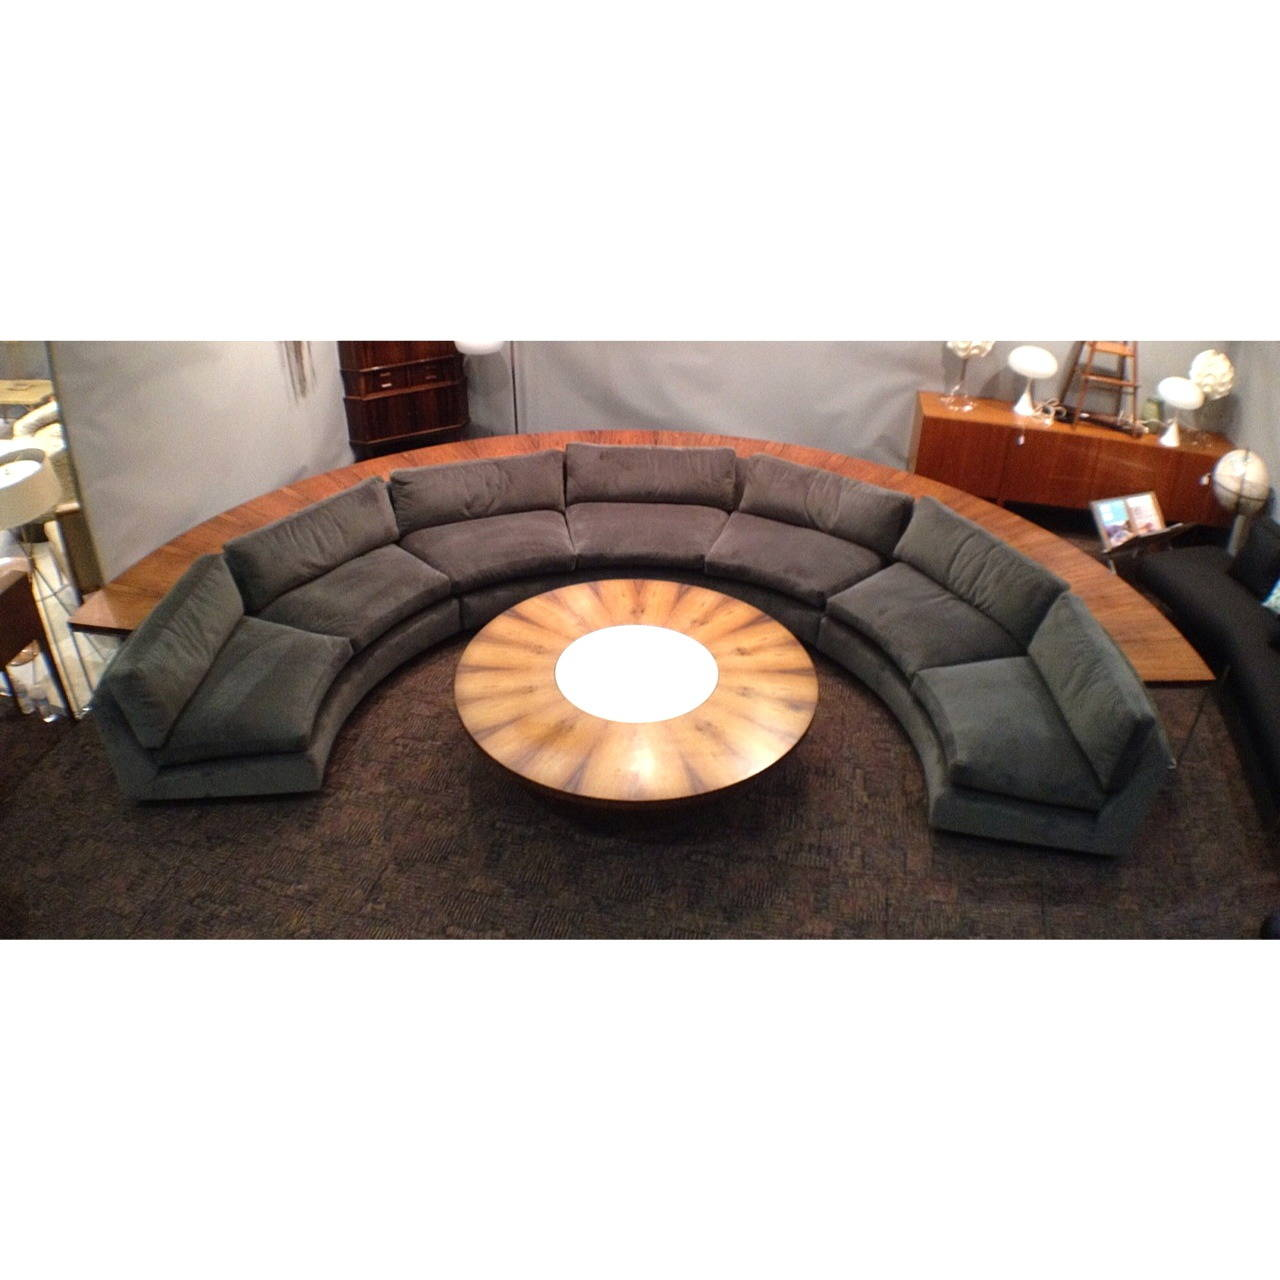 Complete Milo Baughman Thayer Coggin Half Circle Sectional Sofa And Table Set At 1stdibs